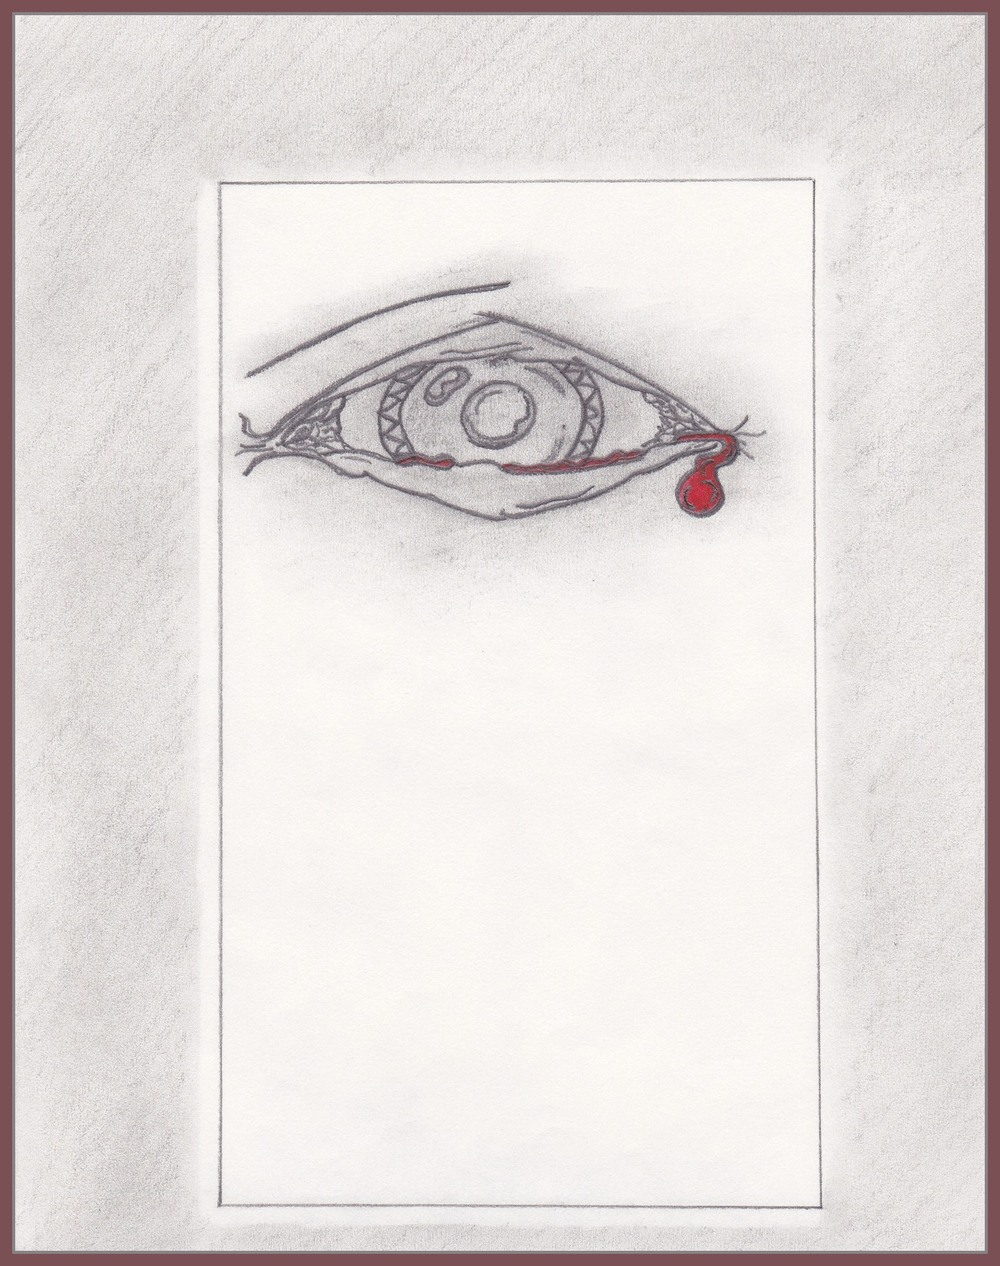 Blood Union Ricky Bartlett 2000 Pencil on Parchment 8 x 10